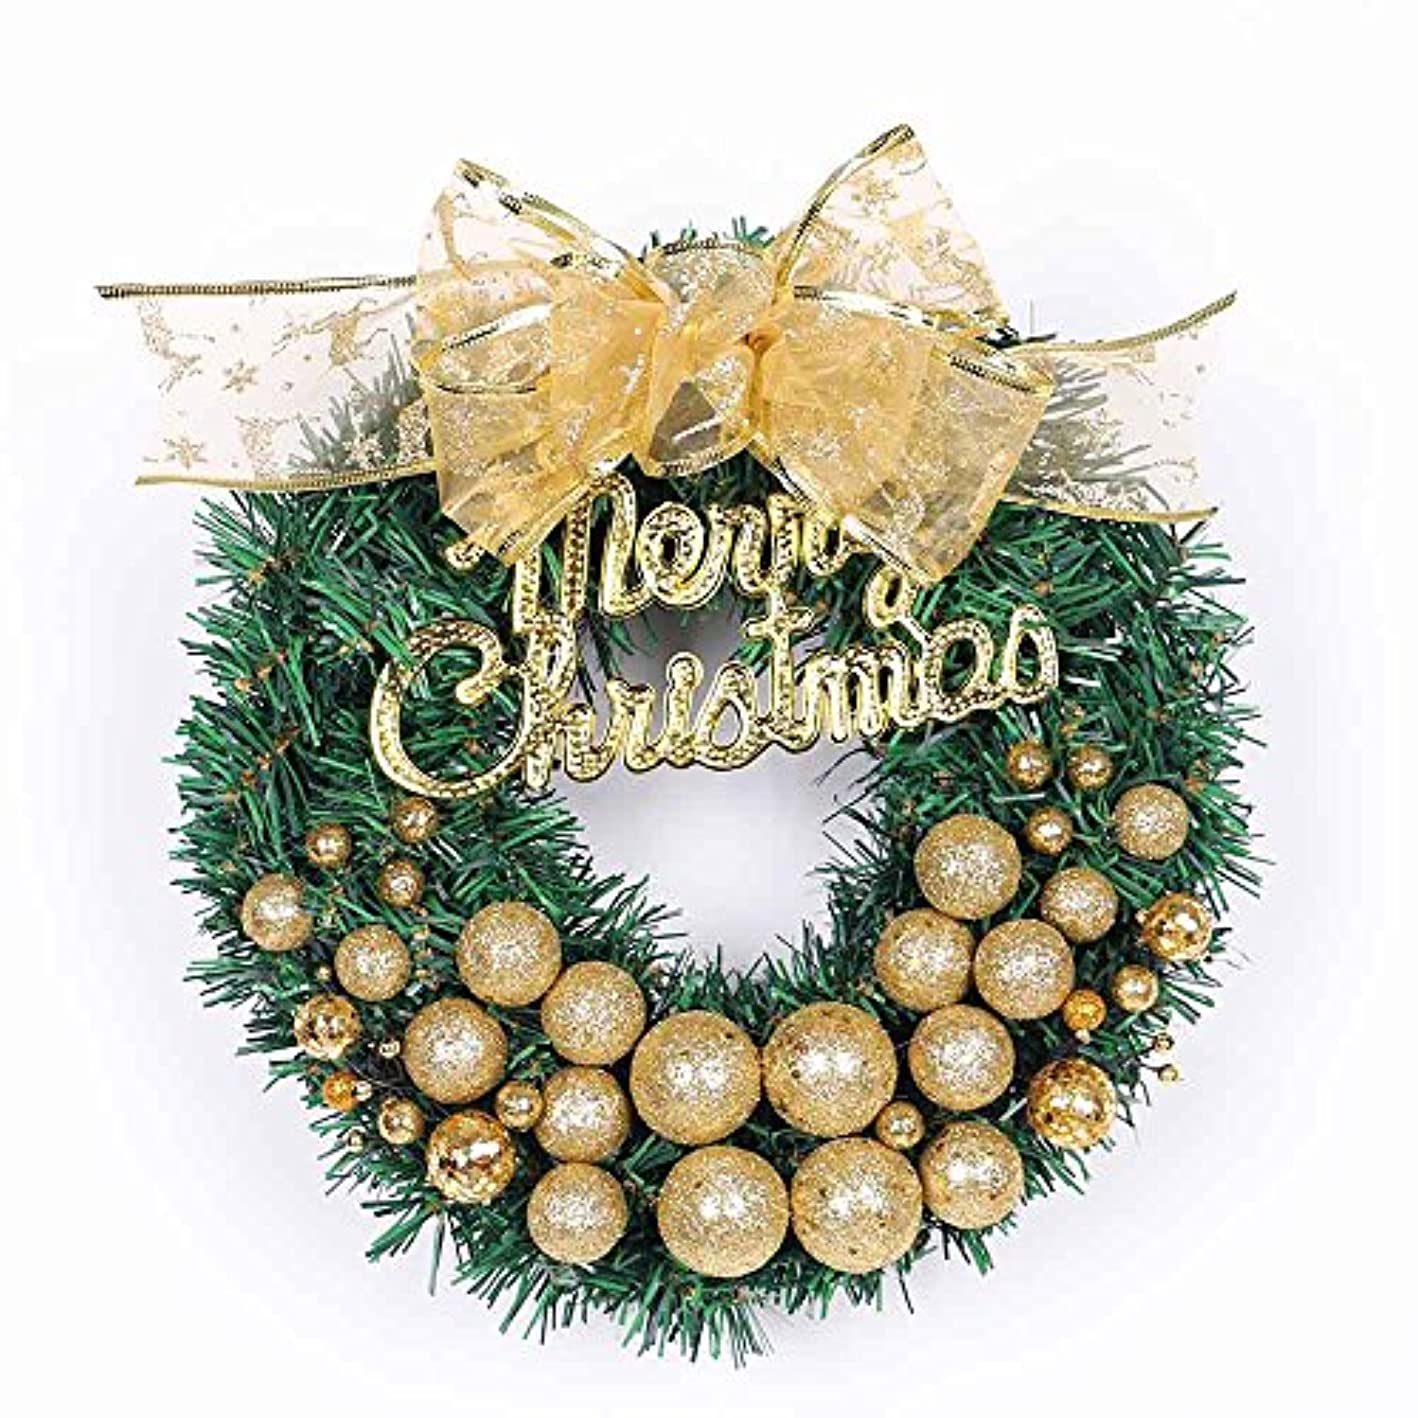 Icocol Elegant Icocol Decorative Front Door Wreath 12 Inch - Year Round Beautiful Silk Wreath Transforms Front Door Decor, Handcrafted with Care, Storage Gift Box Included (Gold)